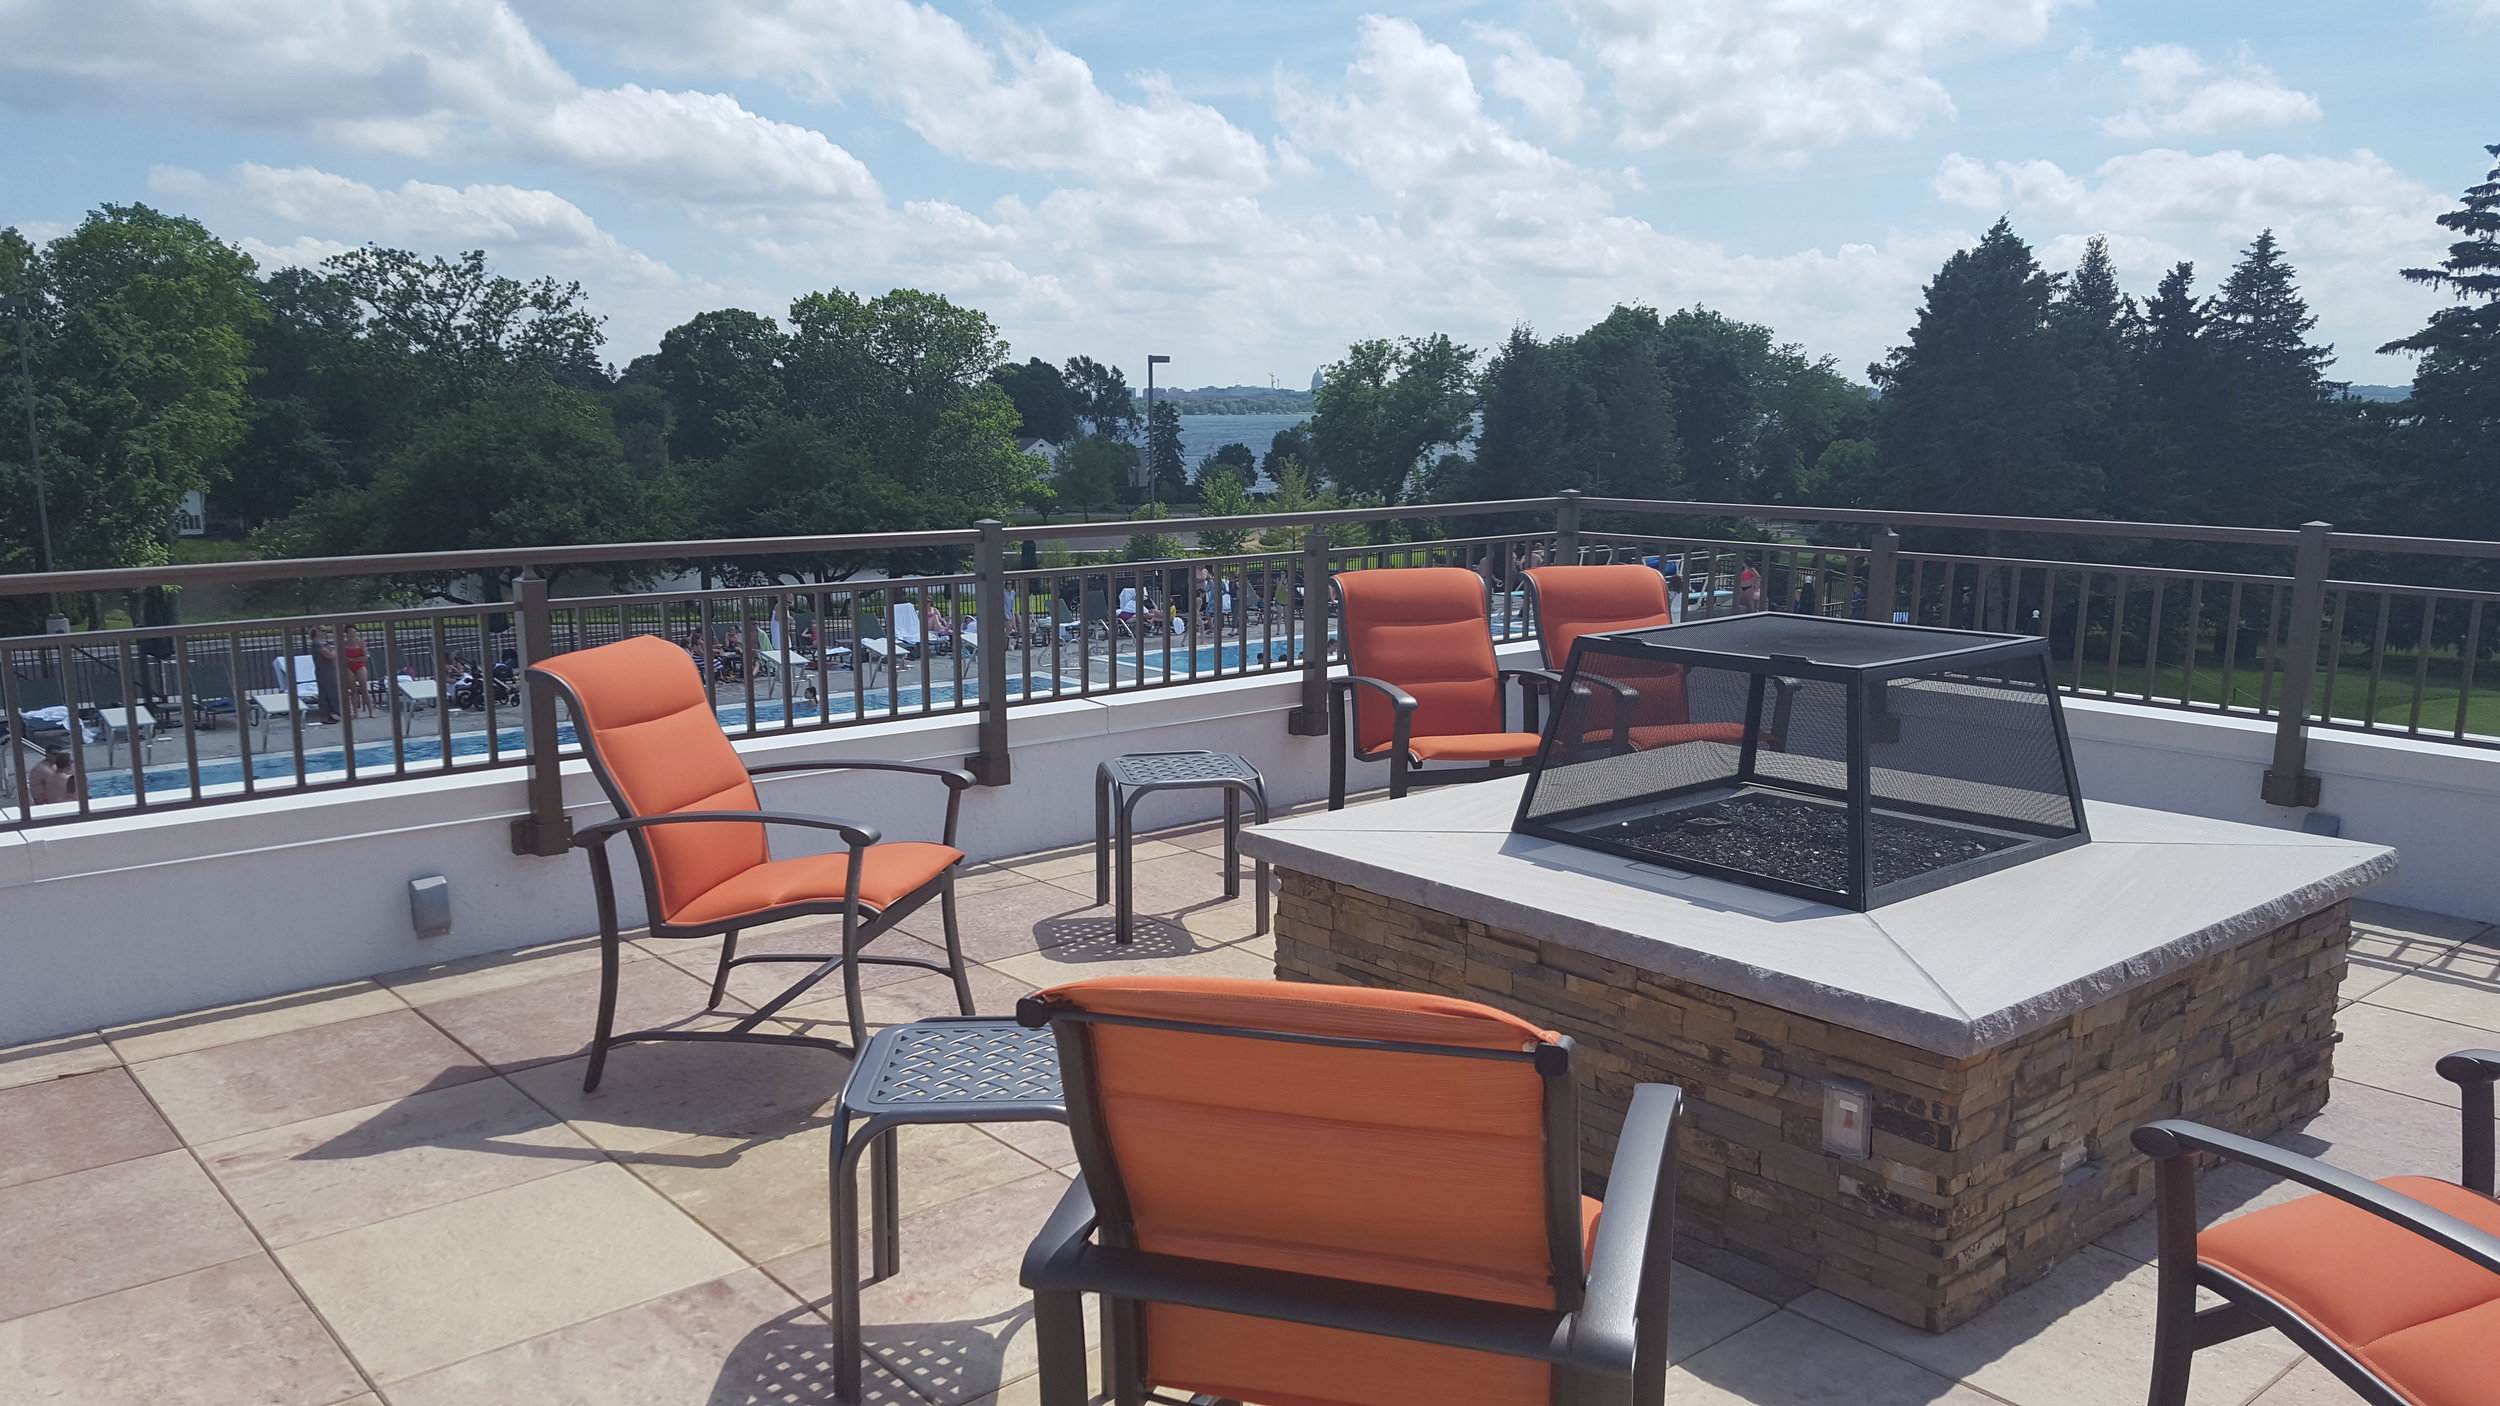 Roof top seating area at Maple Bluff Country Club in Madison, WI